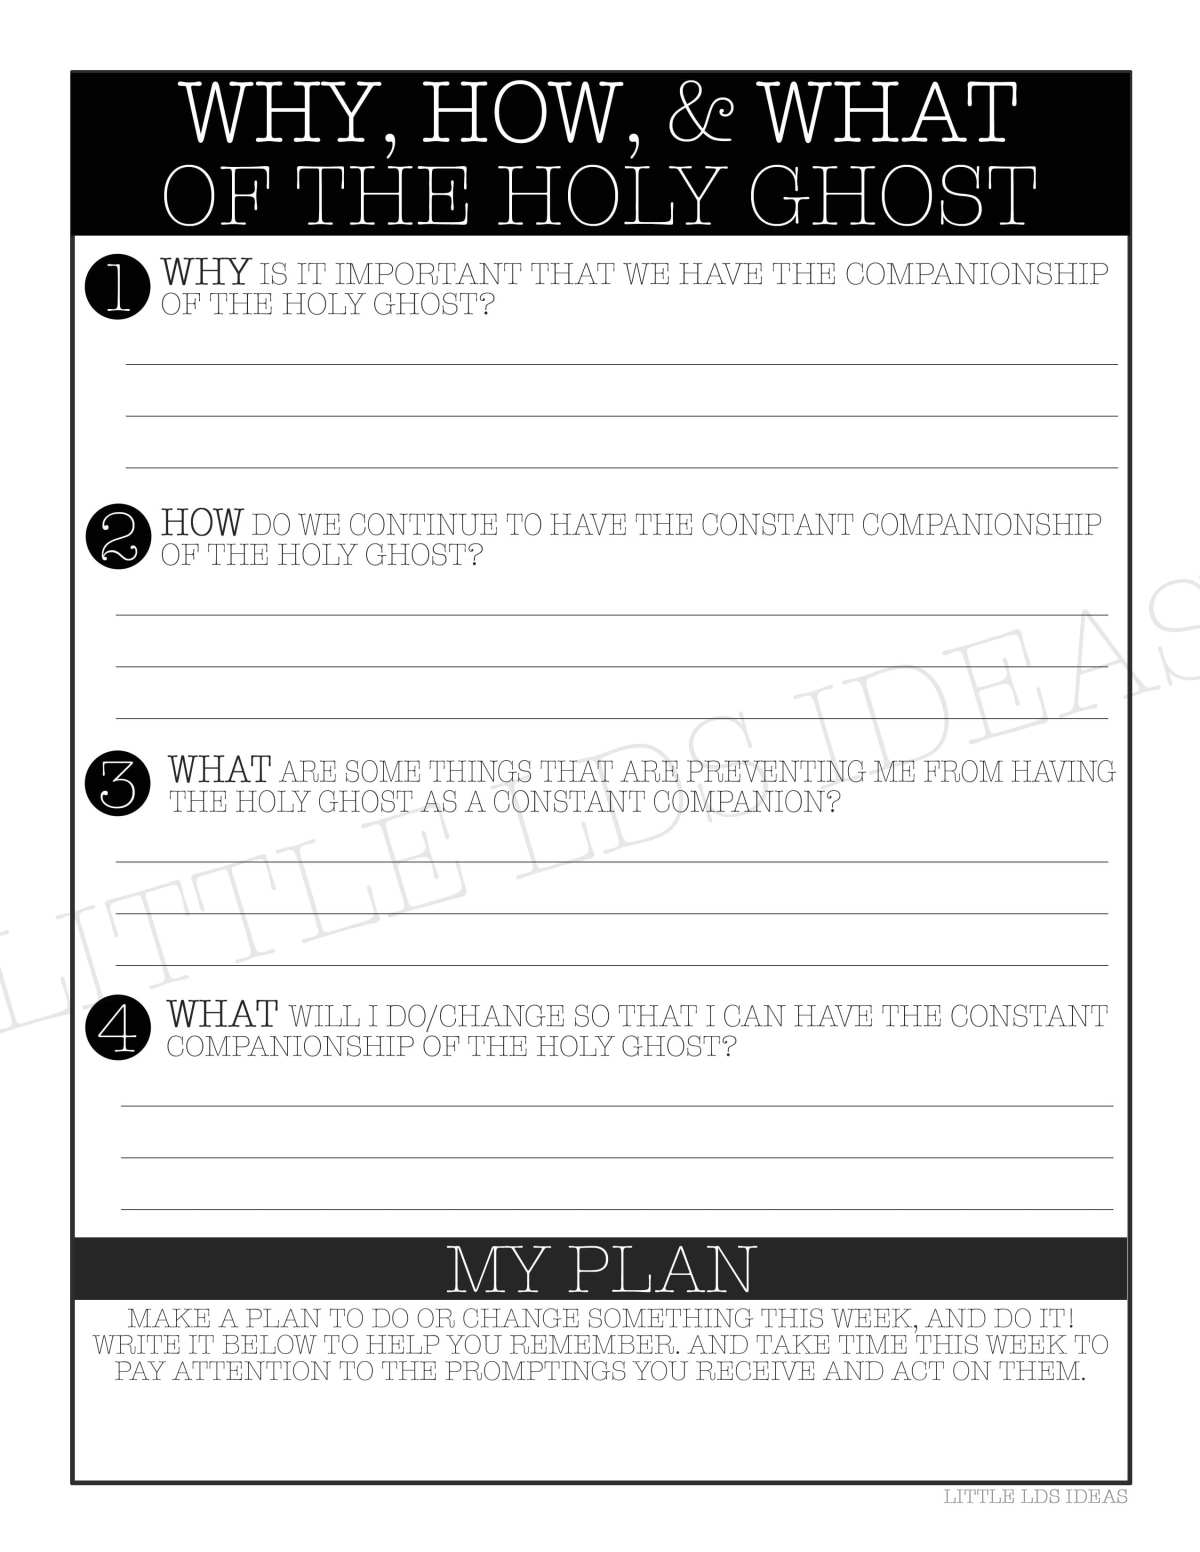 LDS General Conference Teaching Tips. How, Why, and What of the Holy Ghost. Idea and printable included! Little LDS Ideas